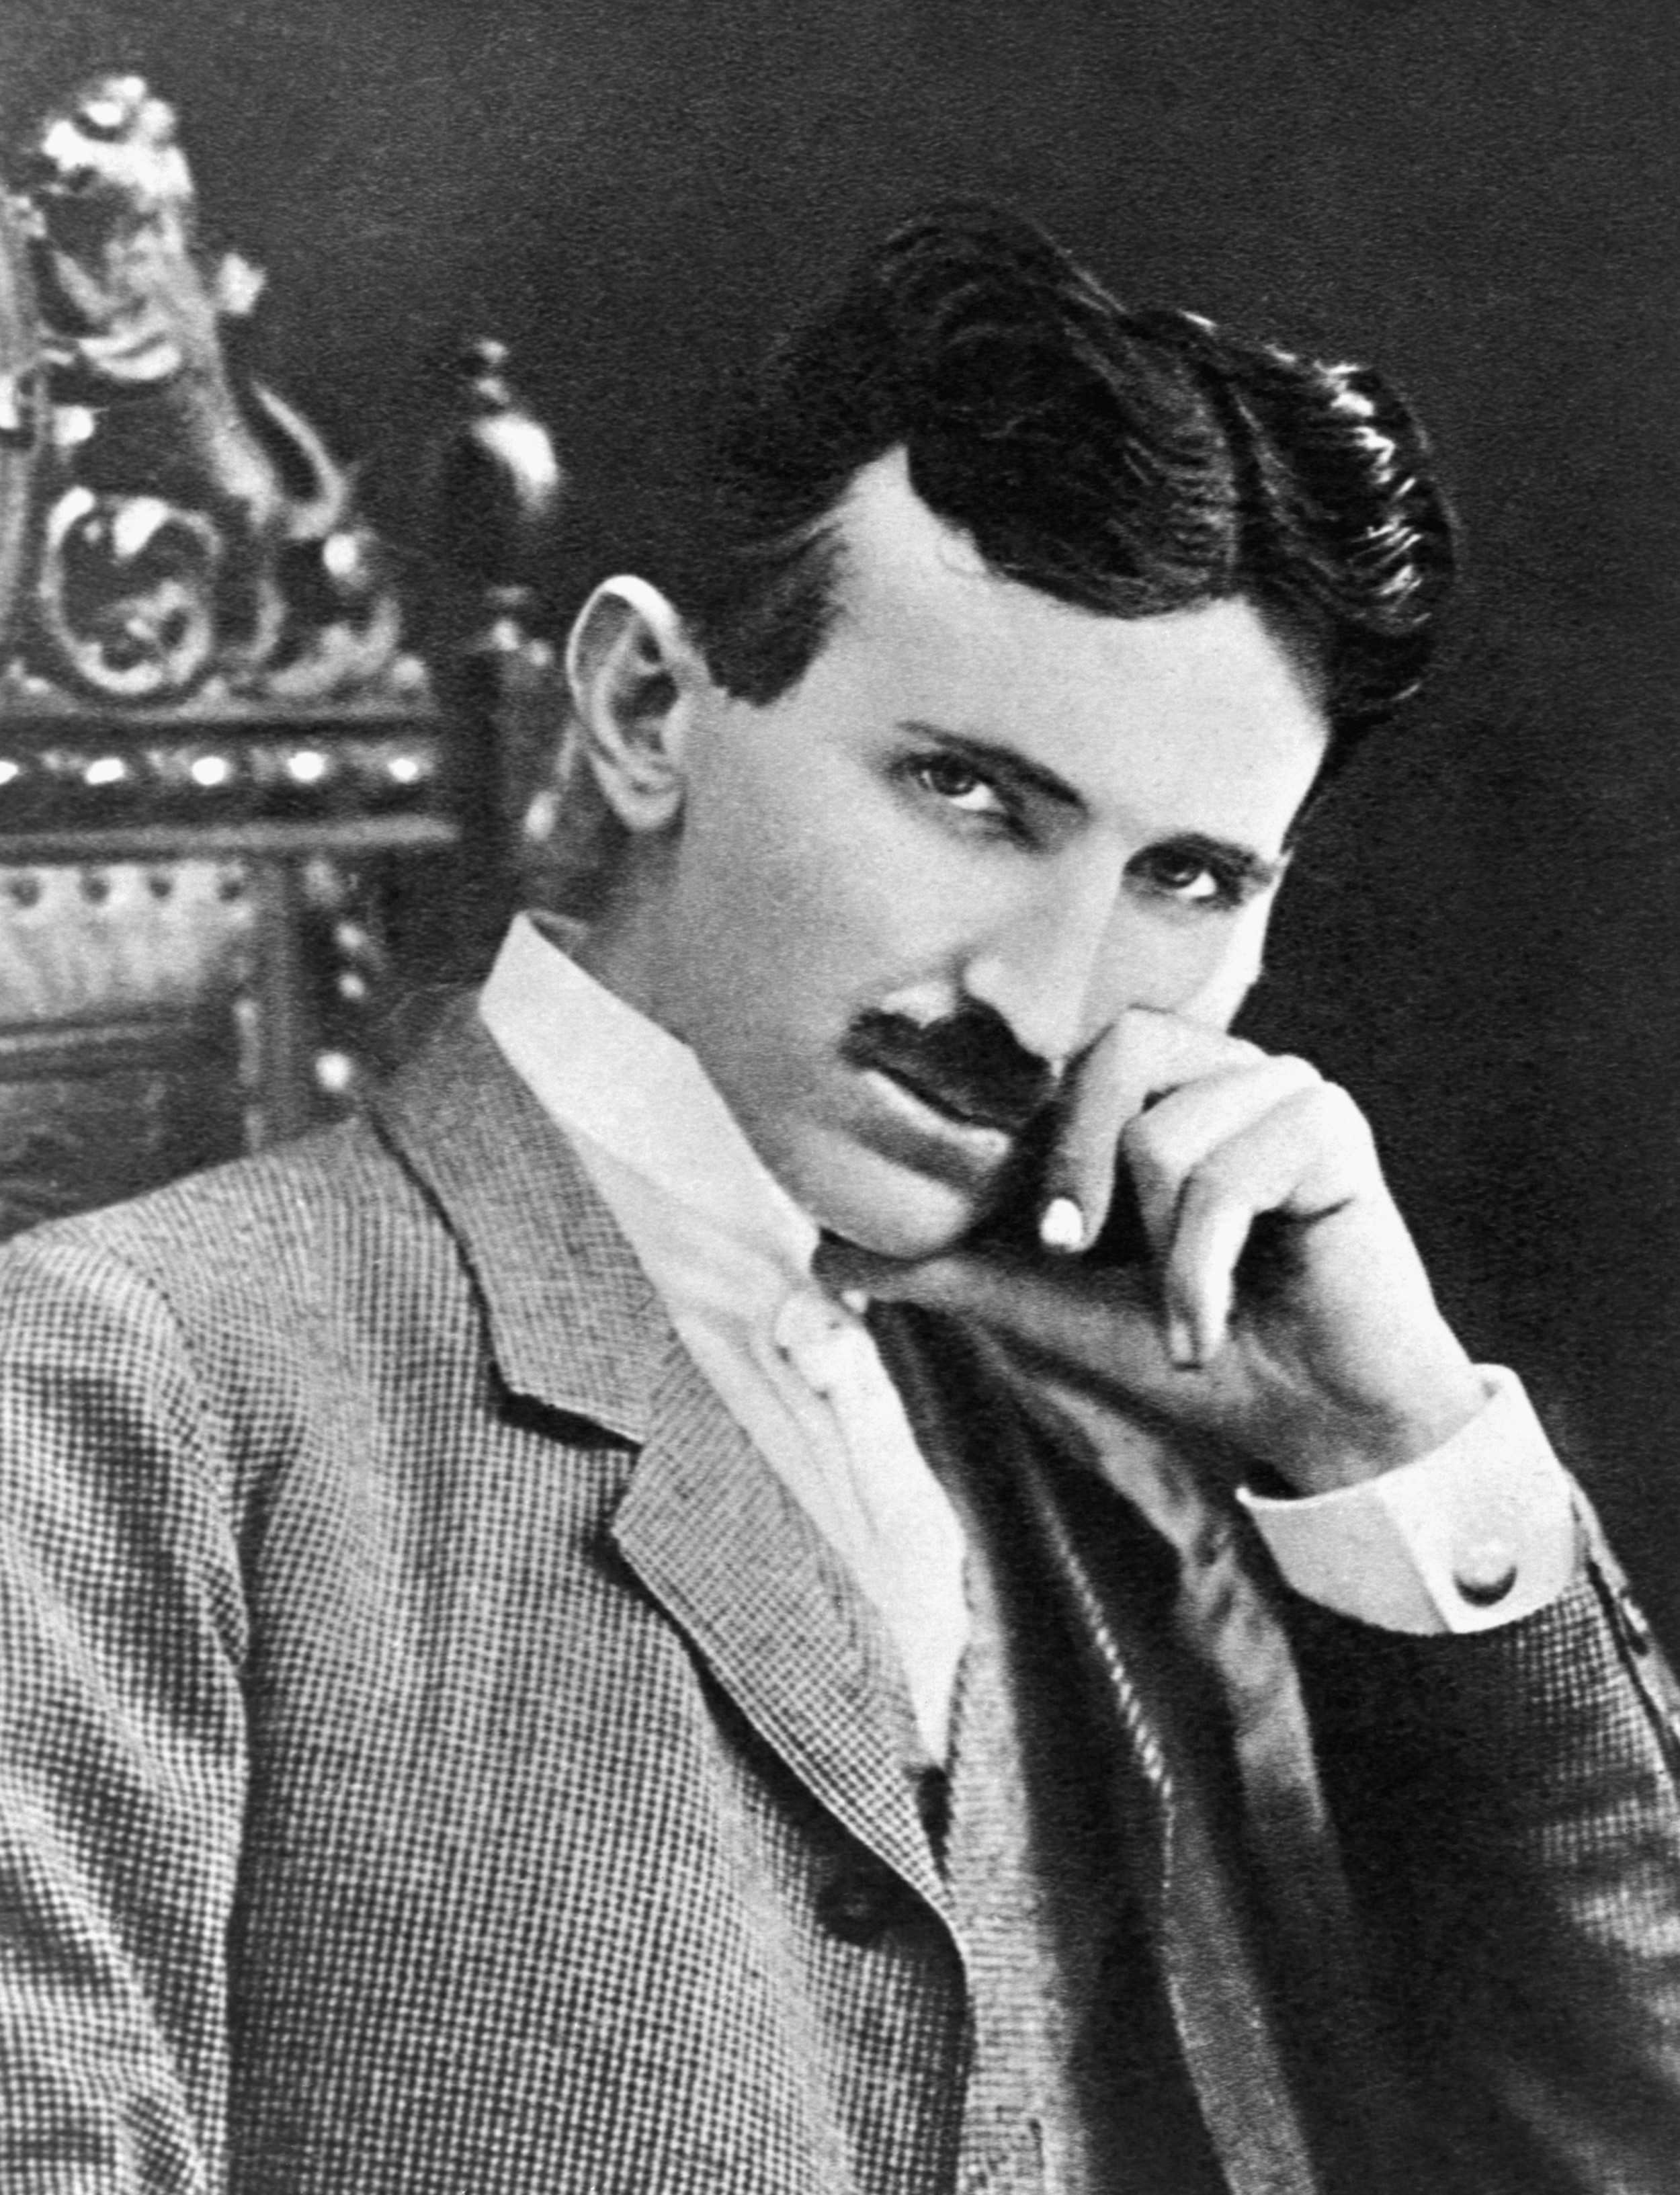 CRACKPOT | Nikola Tesla | Public Domain Photo